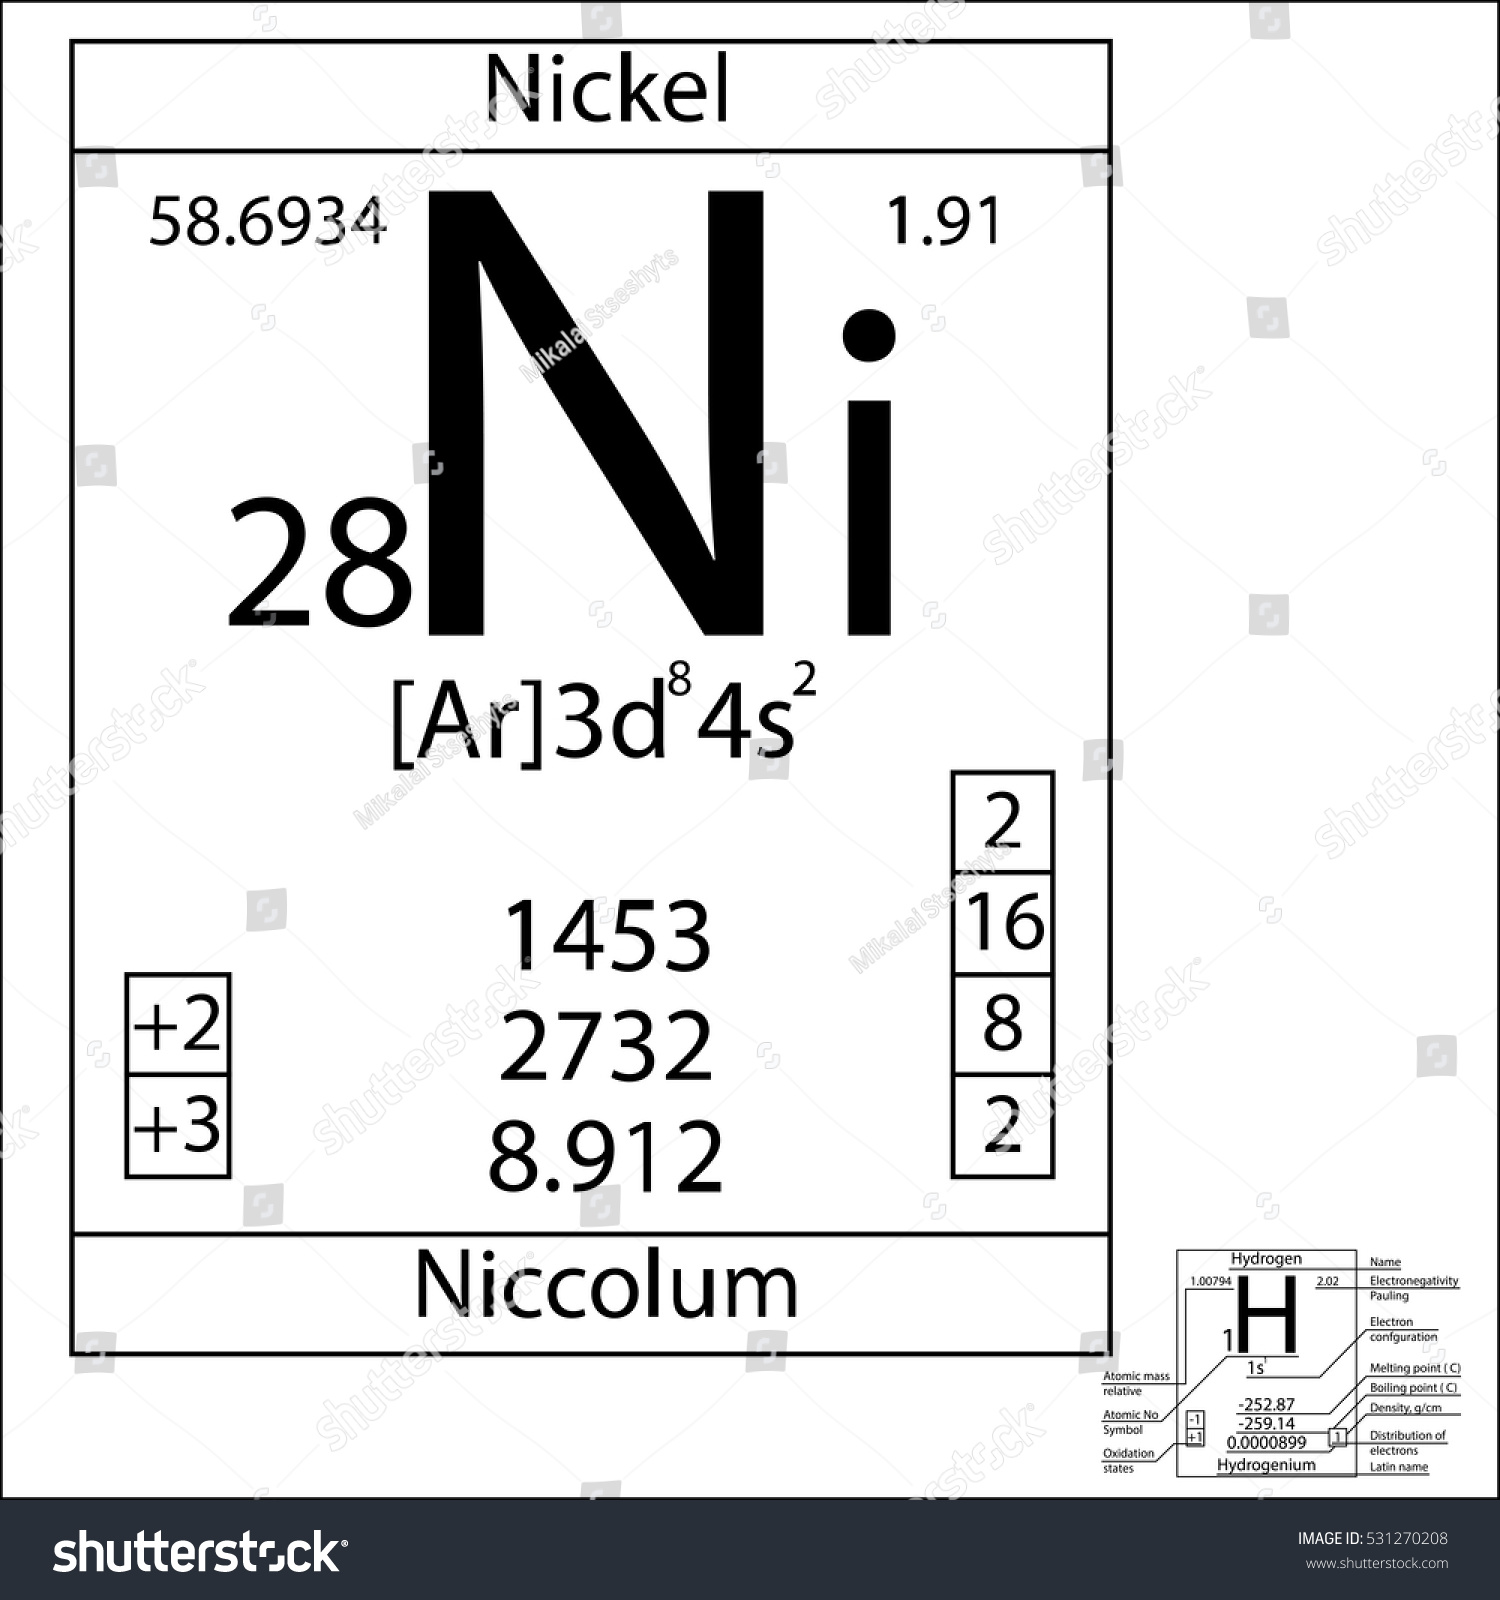 Periodic table for nickel gallery periodic table images periodic table element nickel basic properties stock vector the periodic table element nickel with the basic gamestrikefo Images